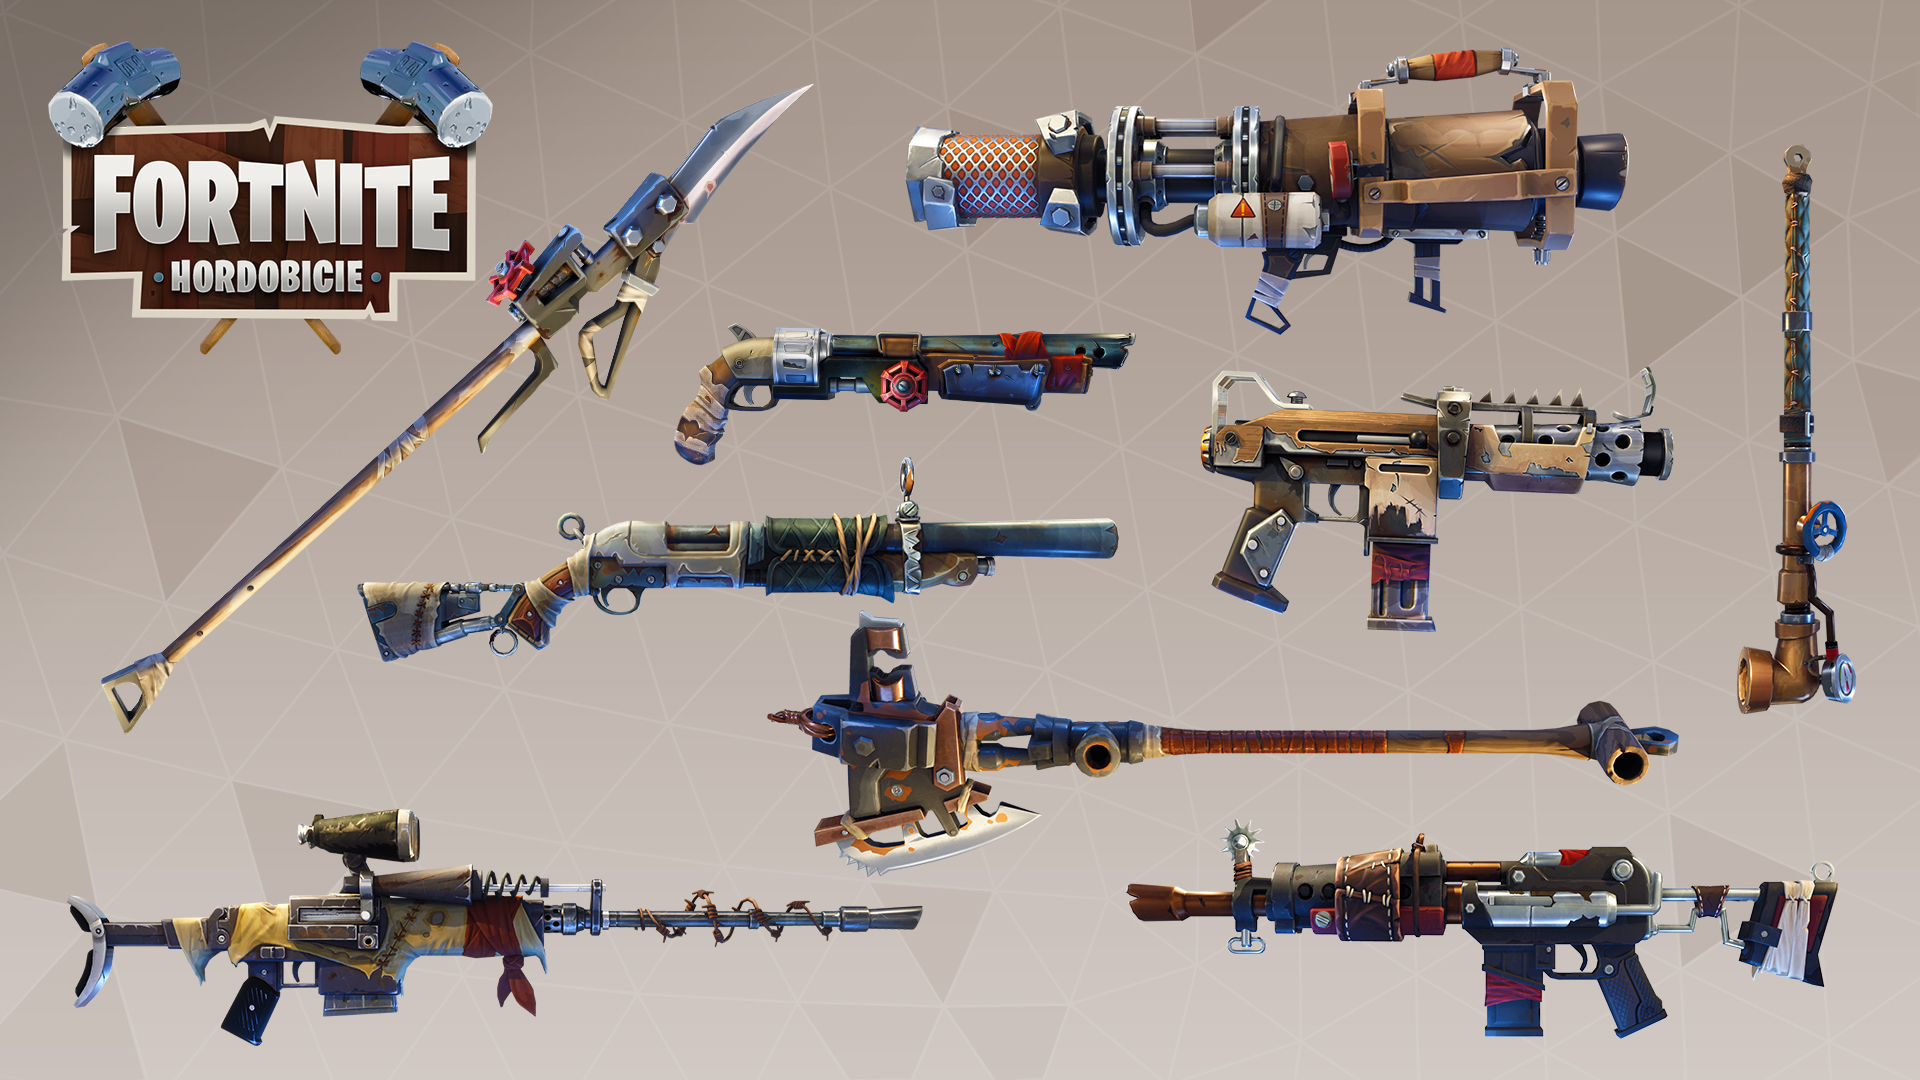 Fortnite%2Fblog%2Fea-1-7-patch-notes%2FPL-HB-Weapons-1920x1080-4d7f6ab5f48fcdebe55db00bbacaf182c09f8422